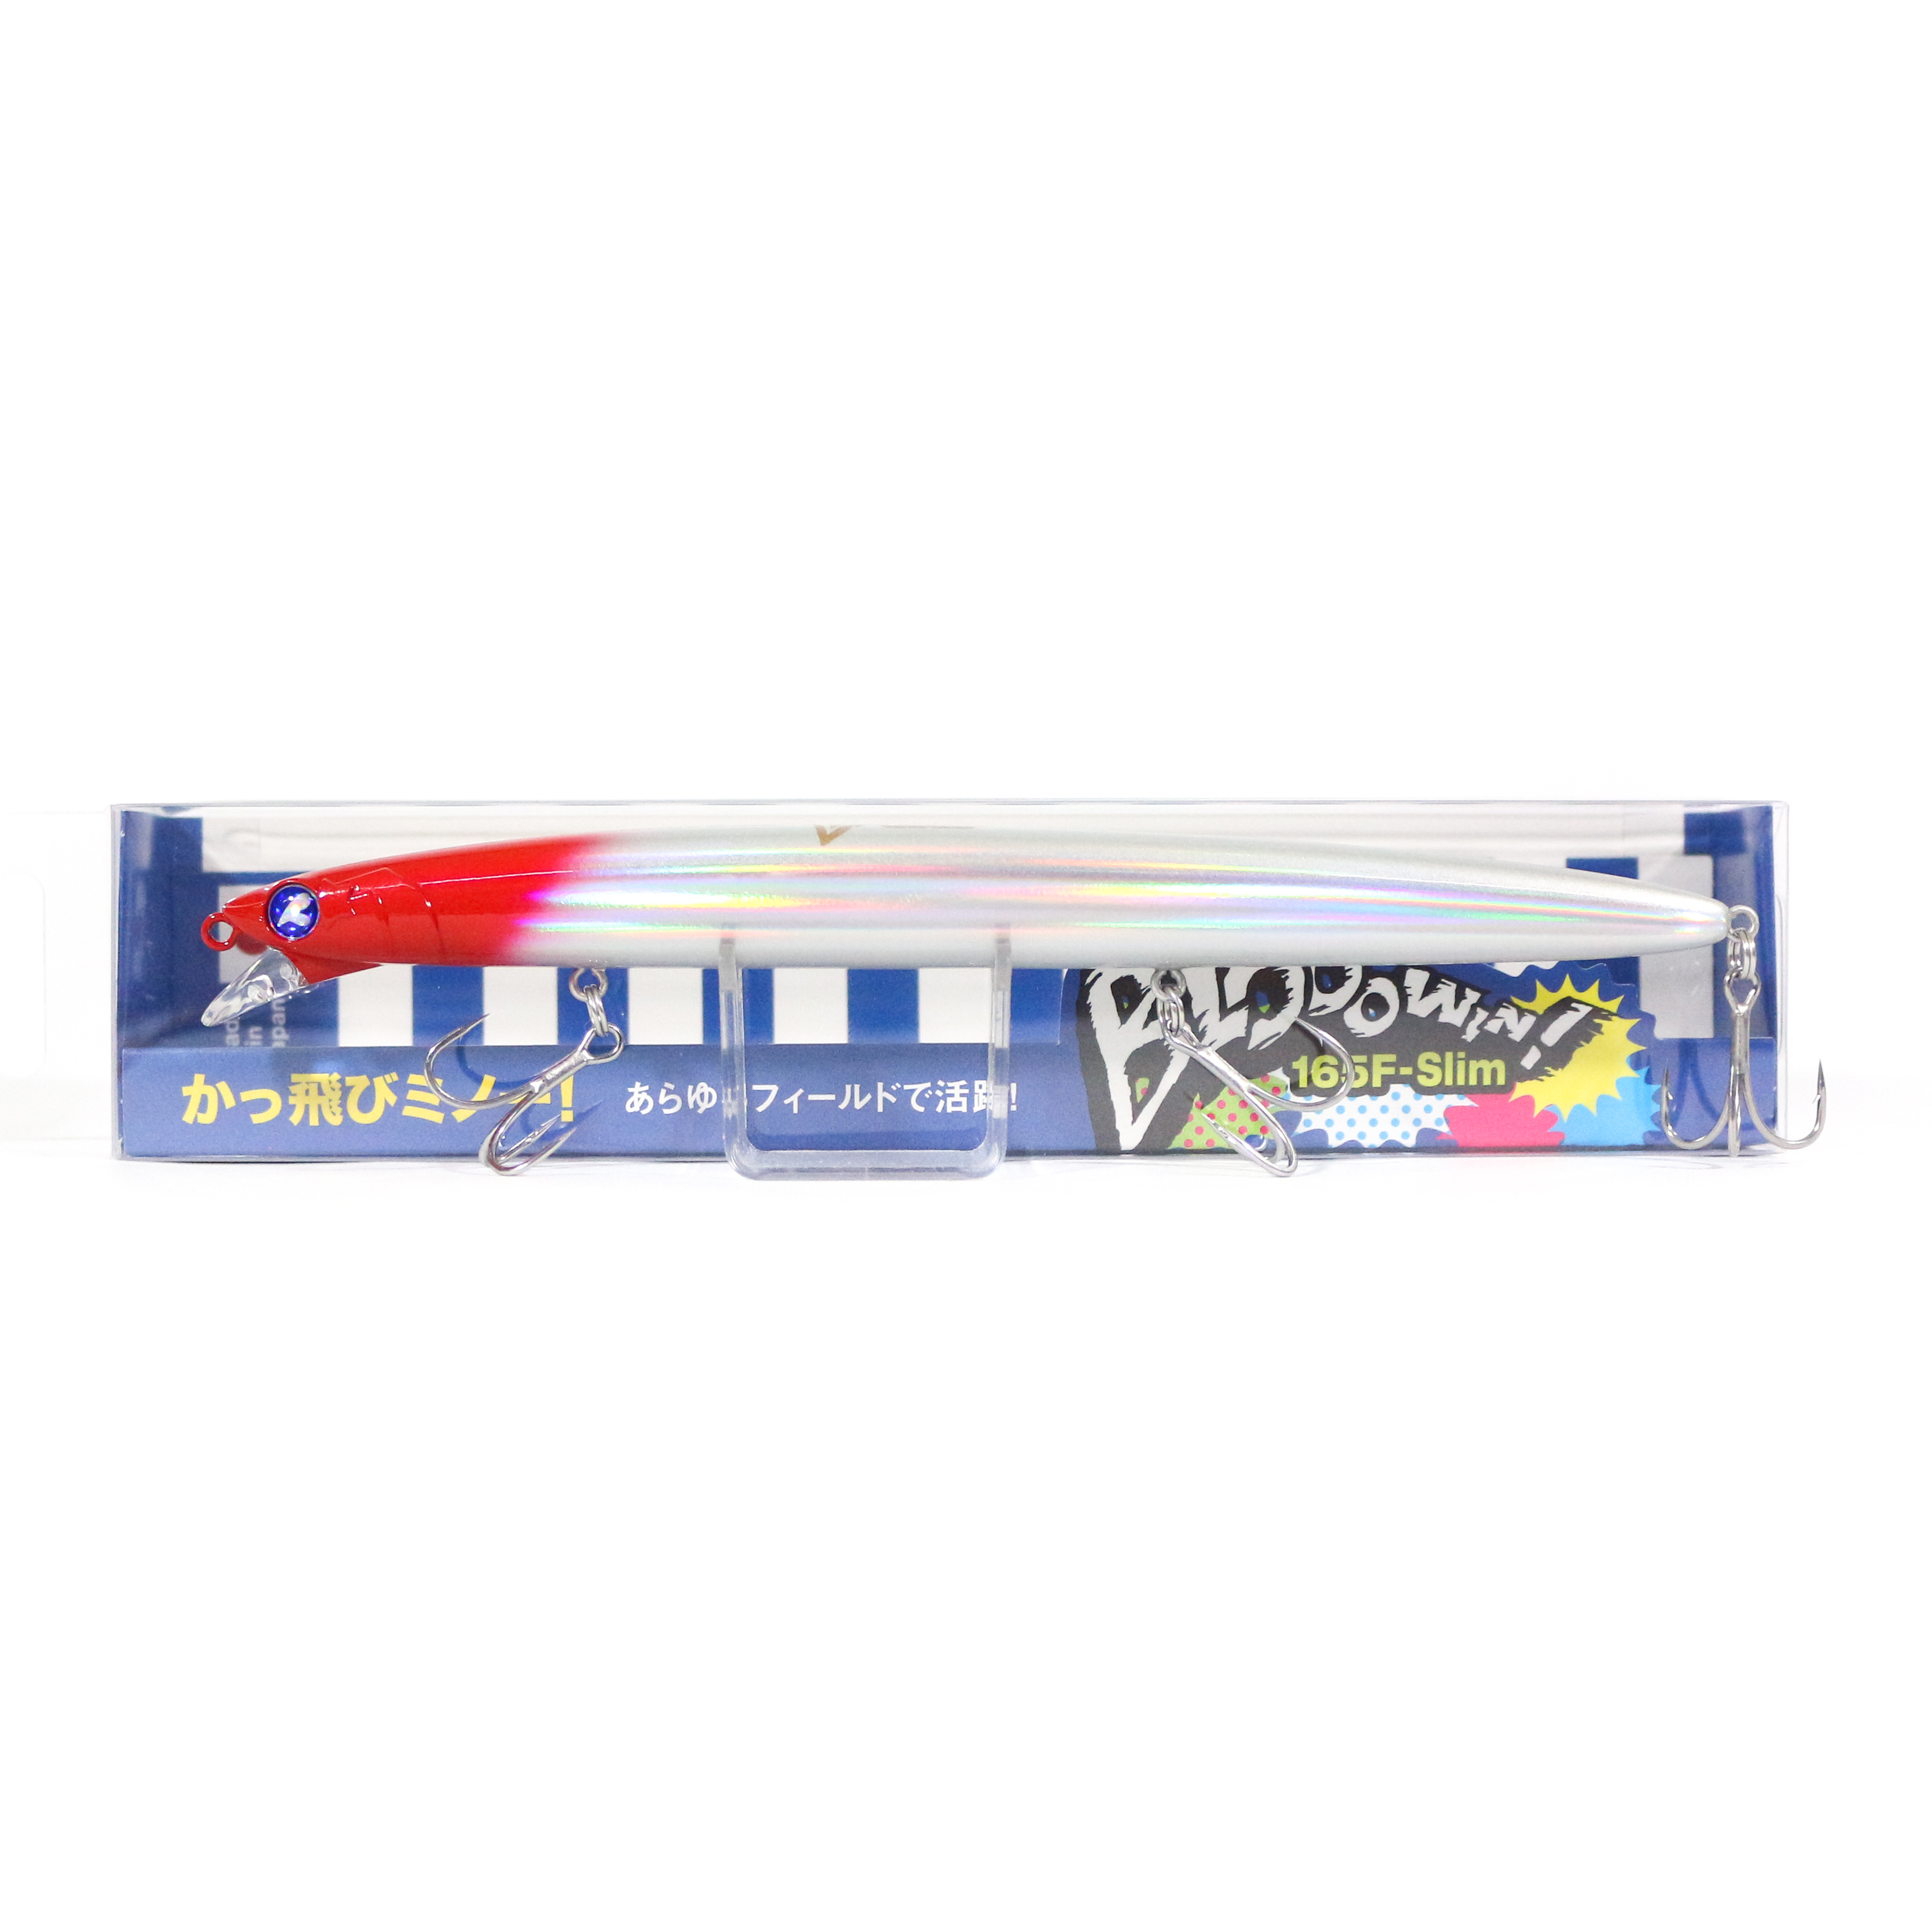 Blue Blue Blooowin 165F 24 grams Floating Lure 02 (5764)